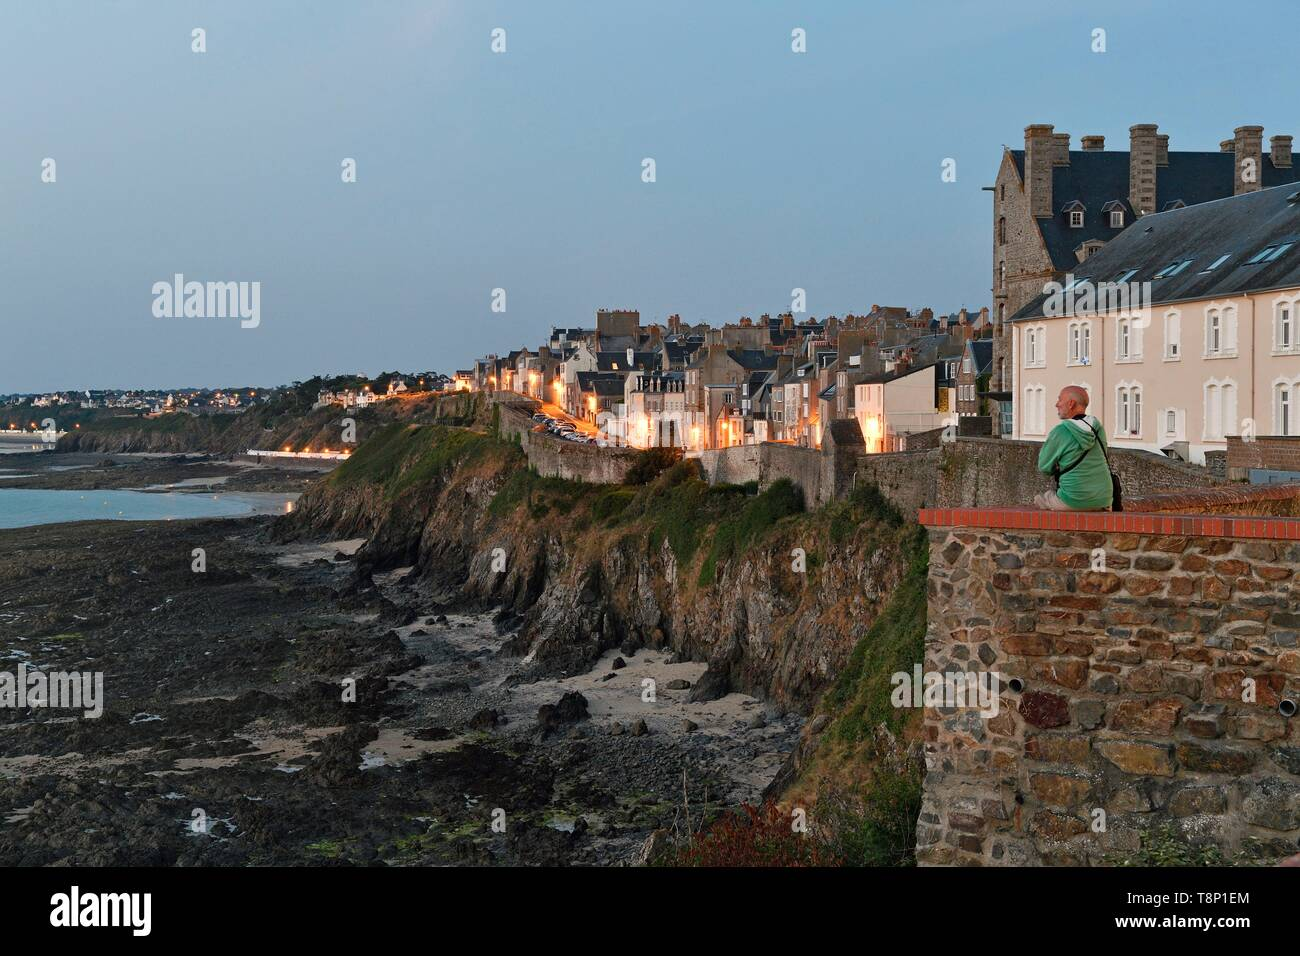 France, Manche, Cotentin, Granville, the Upper Town built on a rocky headland on the far eastern point of the Mont Saint Michel Bay (MR-RM) - Stock Image